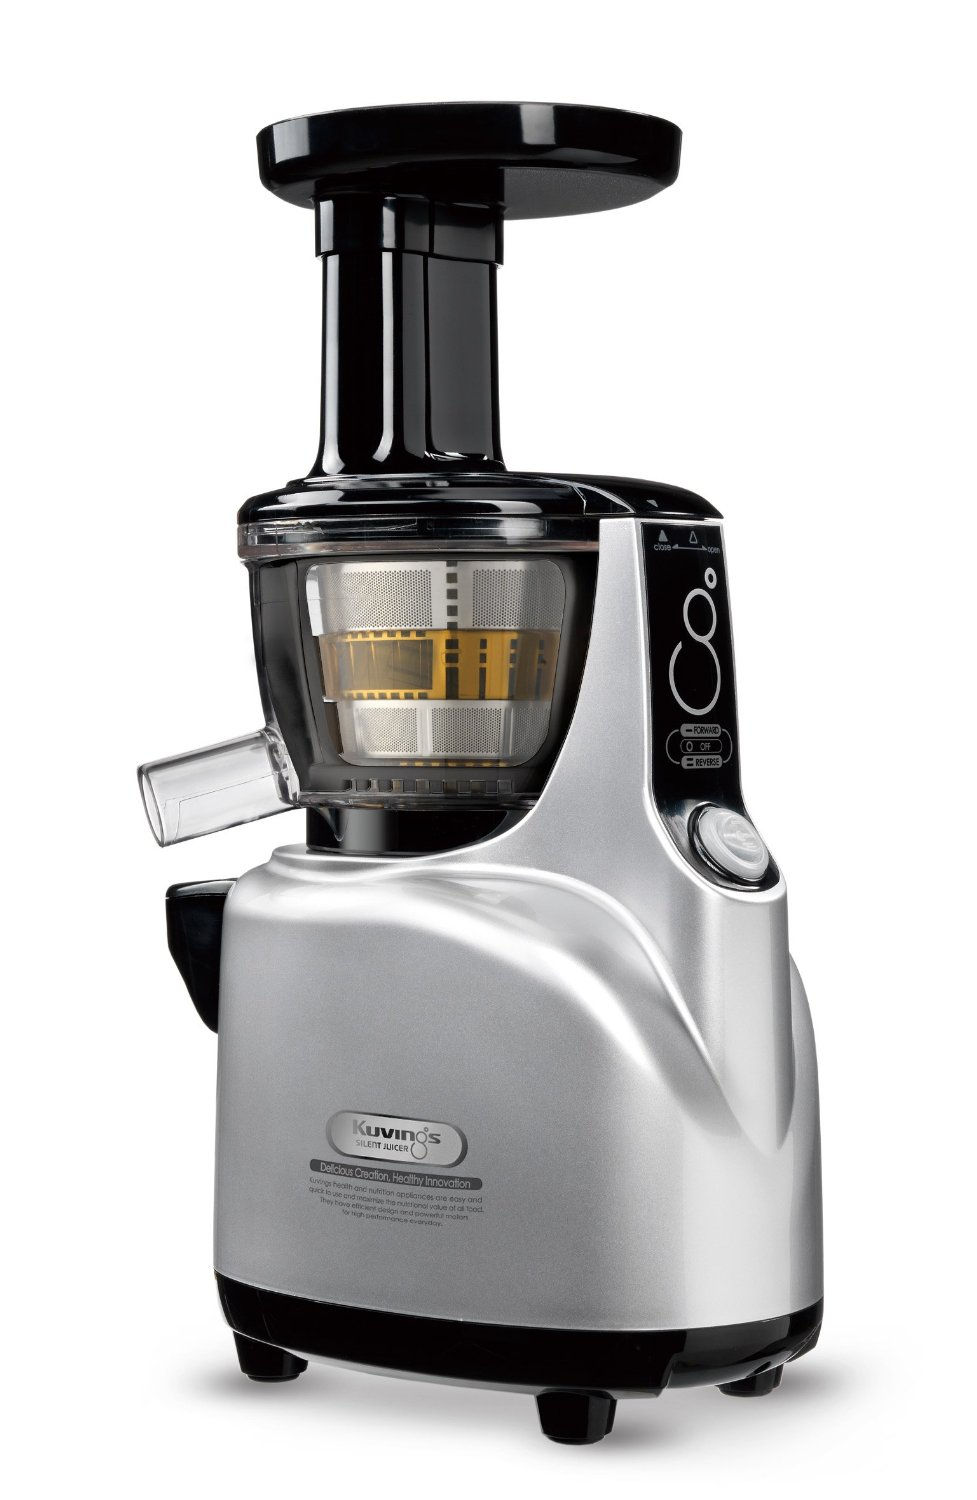 Kuvings Upright Masicating Juicer